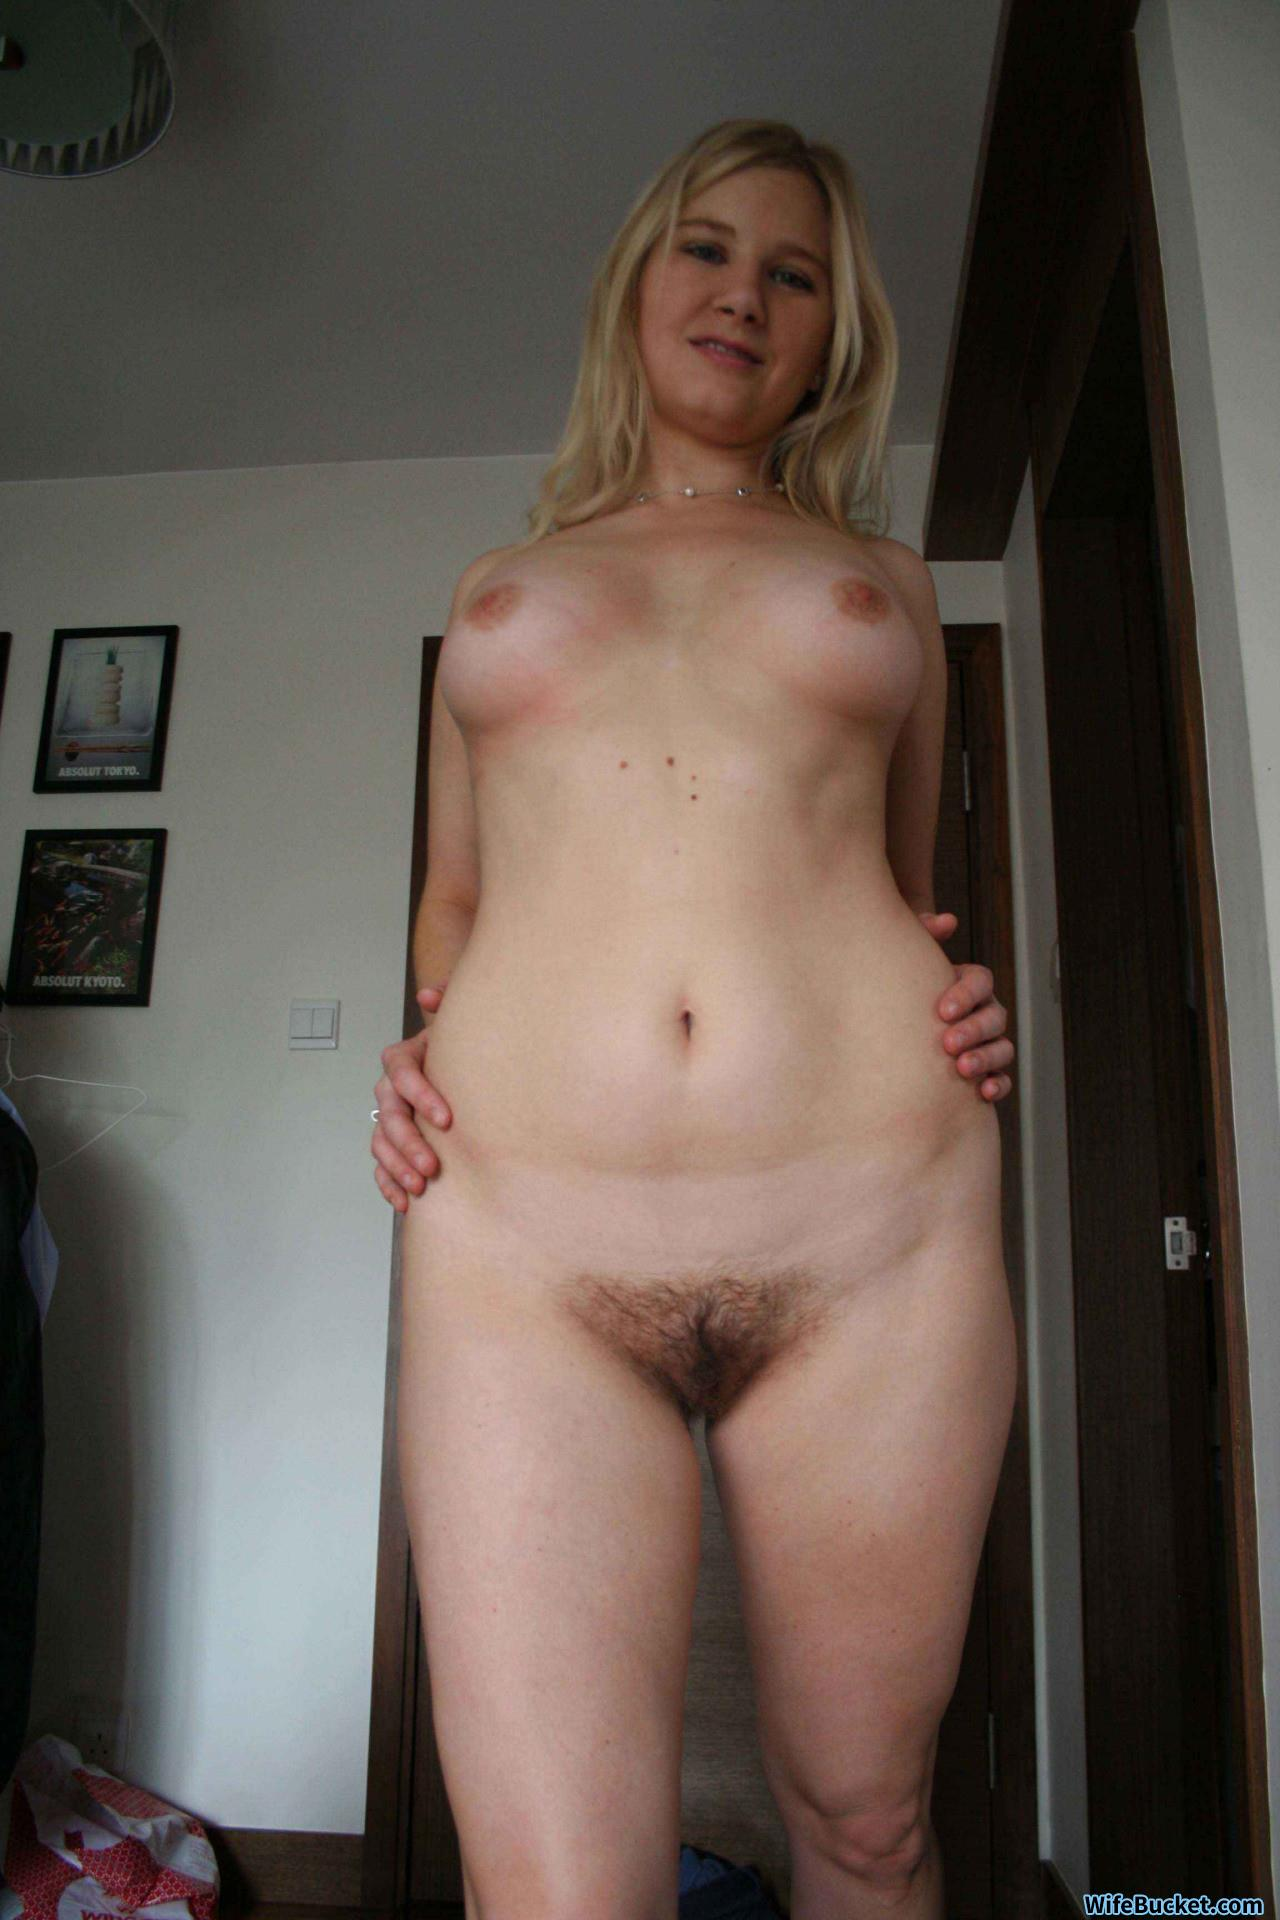 Real amateur wife gallery